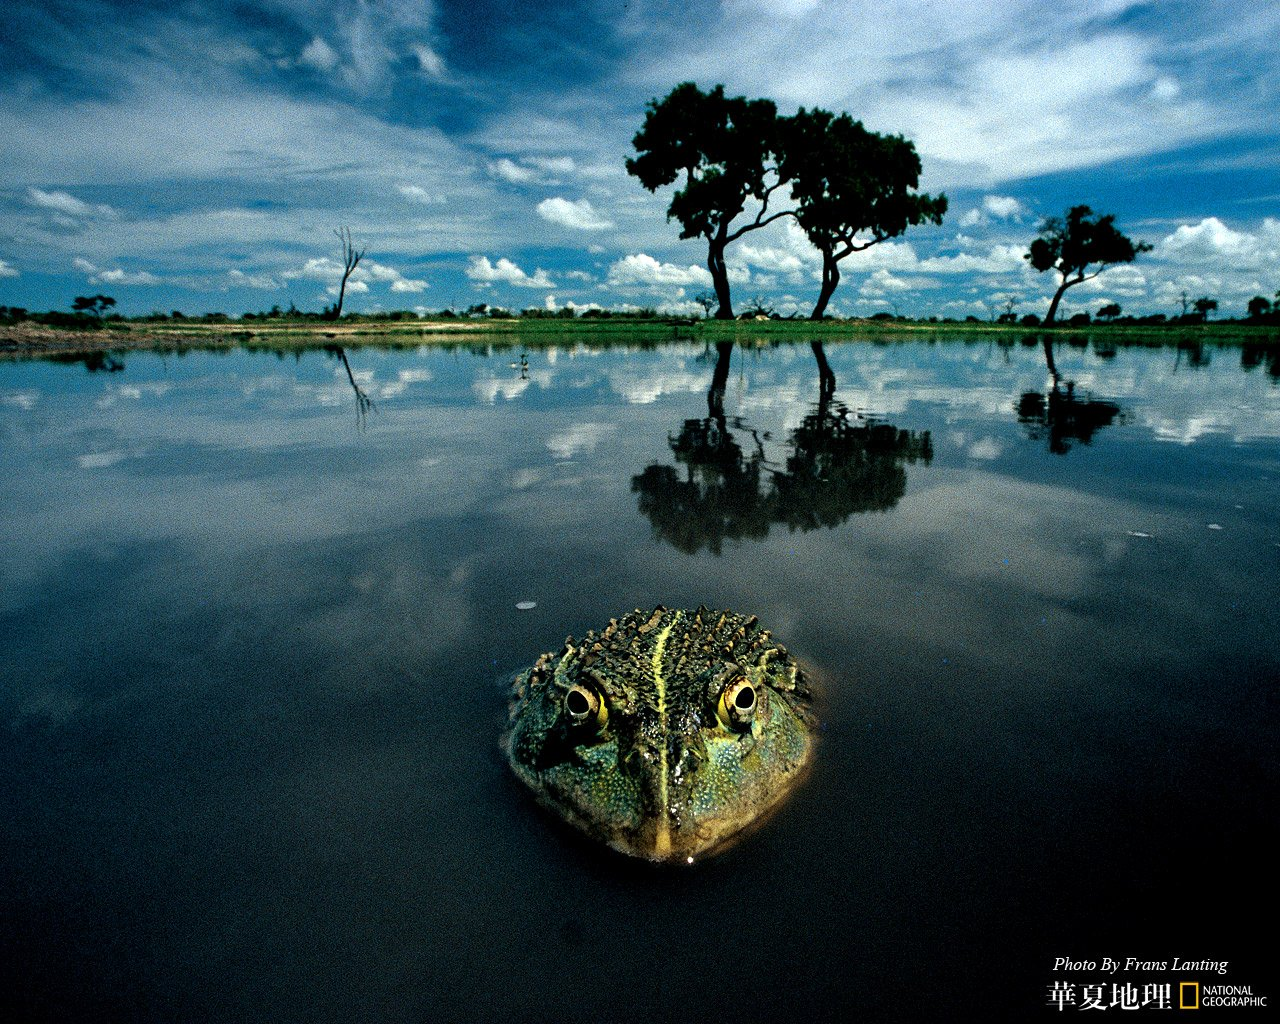 National Geographic Wallpaper Download: National Geographic Wallpaper Desktop